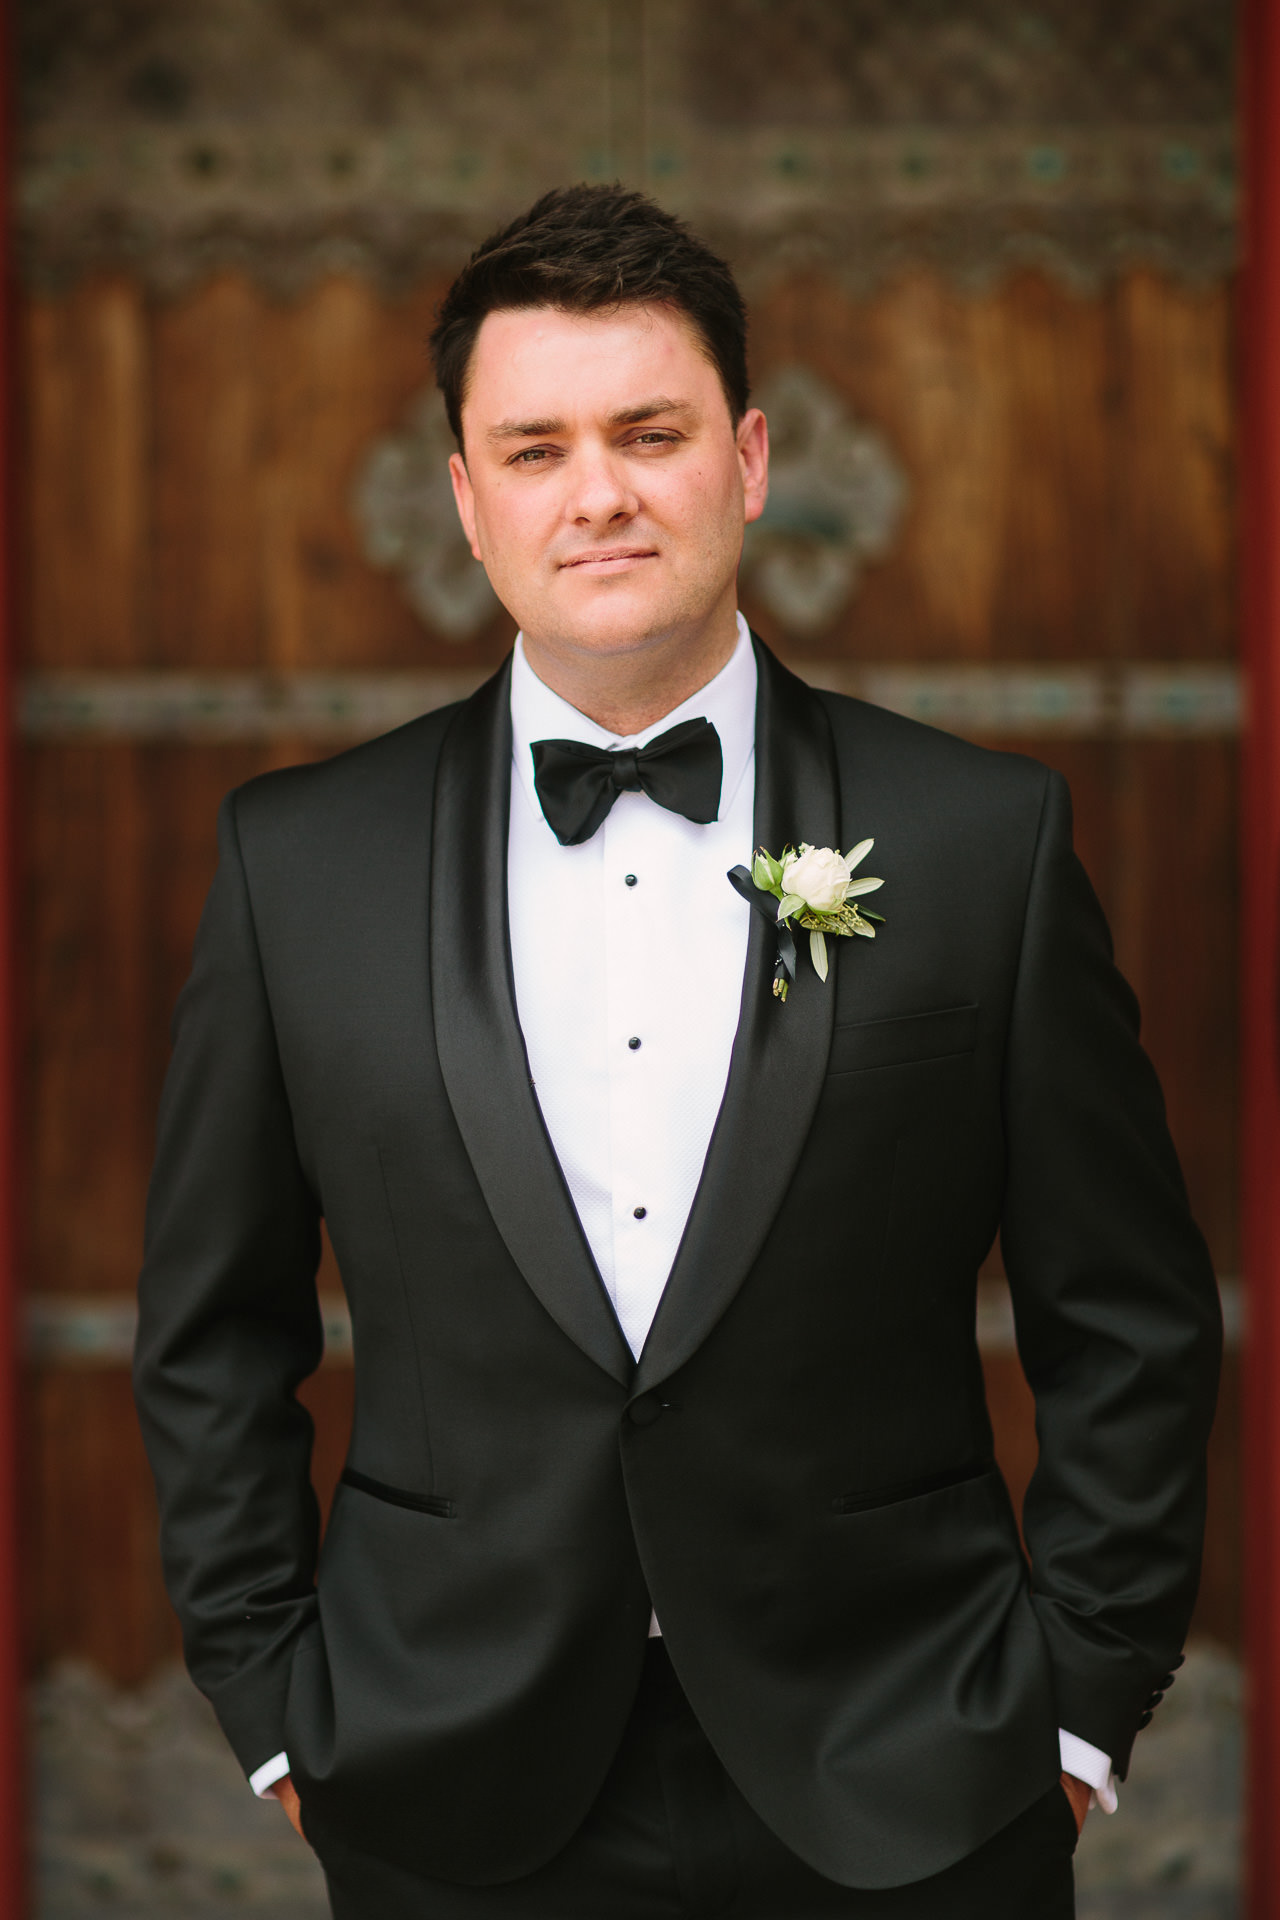 dapper groom in tuxedo, black tie against wooden door